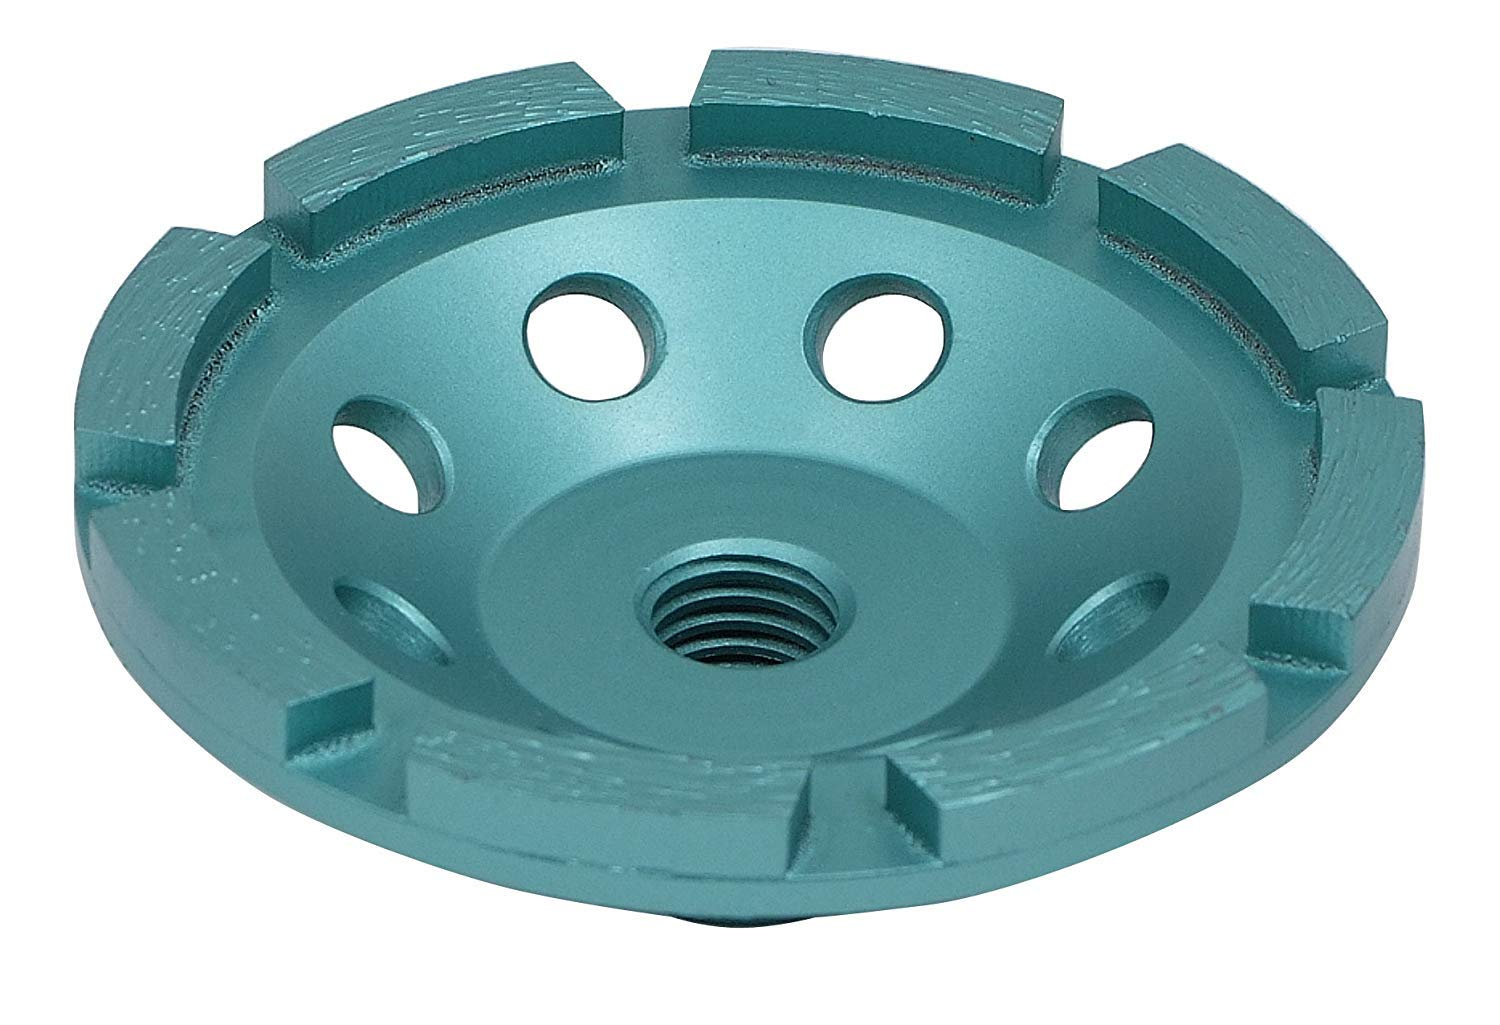 10-Pack Premium 4 Inch Diamond Cup Wheel for Grinding Concrete and Masonry, Single Row, 5/8''-11 Thread